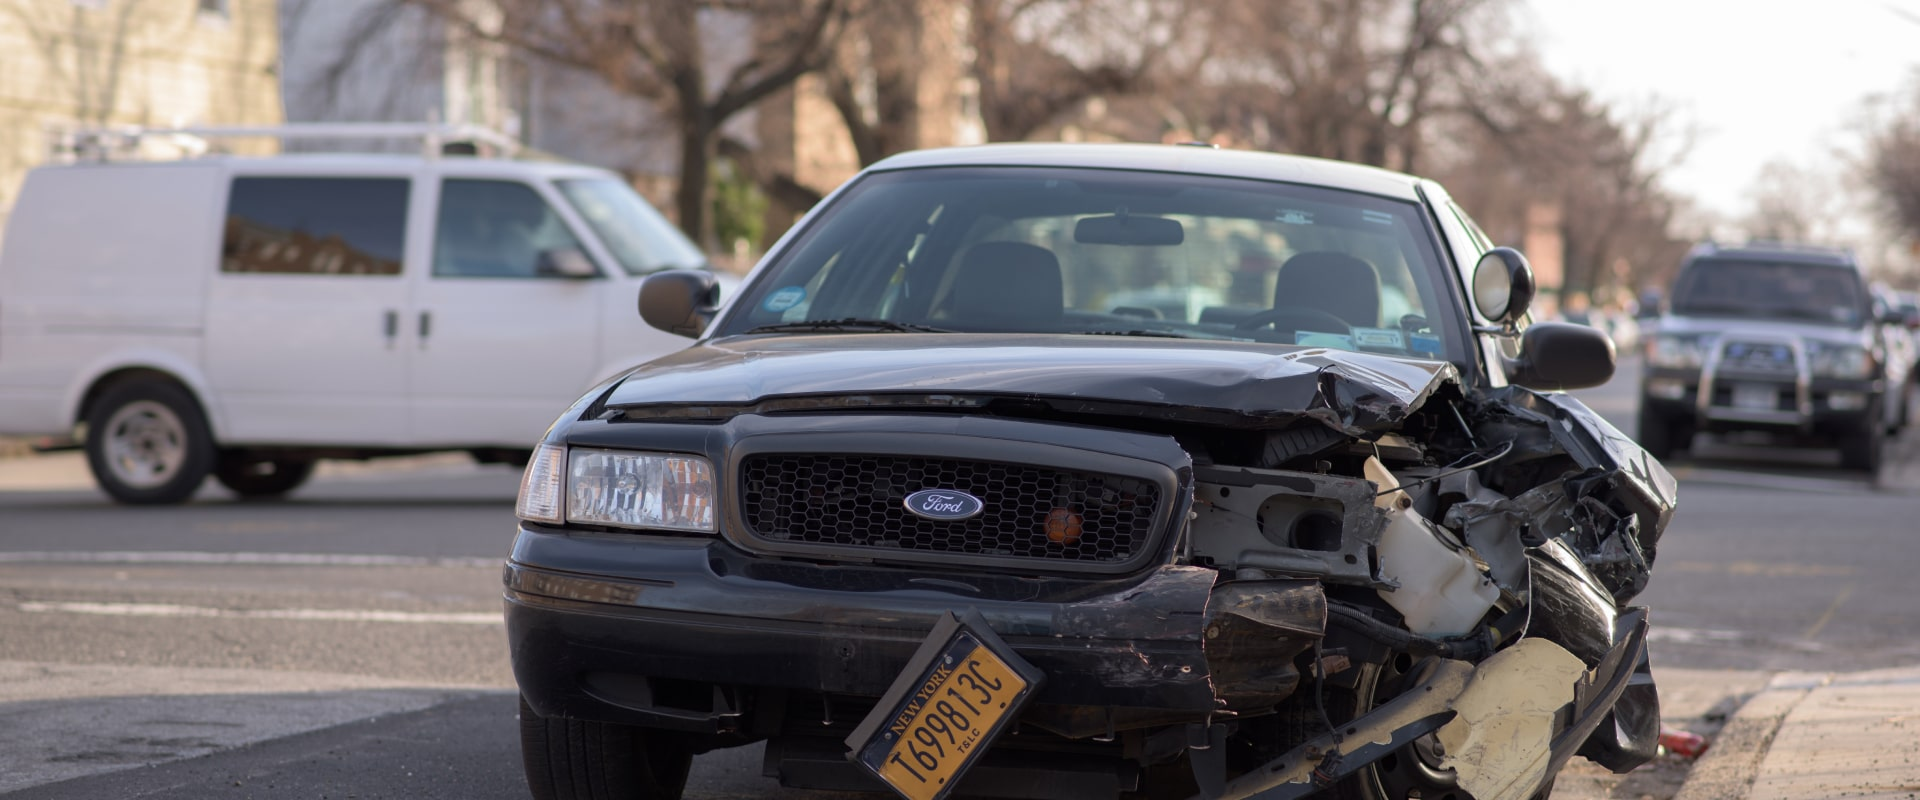 4 Tips for Dealing with Insurance After a Vehicle Accident